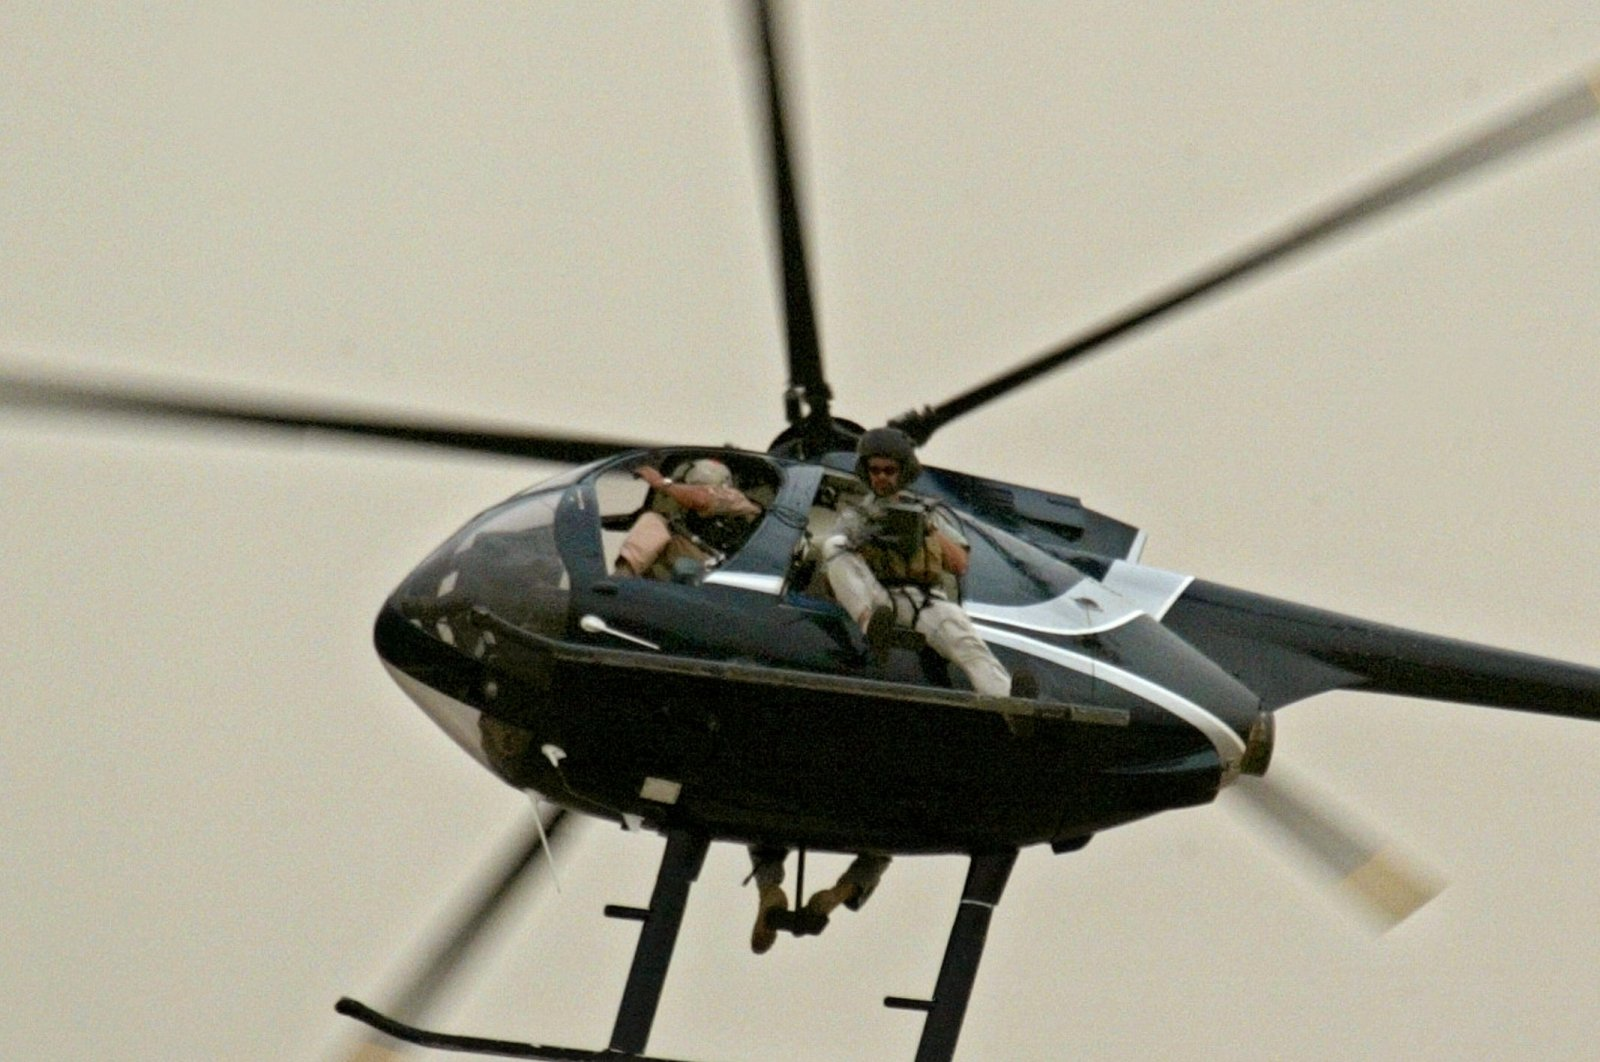 Members of U.S. private security company, Blackwater, patrol the skies of Baghdad on board a Huges 500 helicopter, April 22, 2004 (AFP Photo)